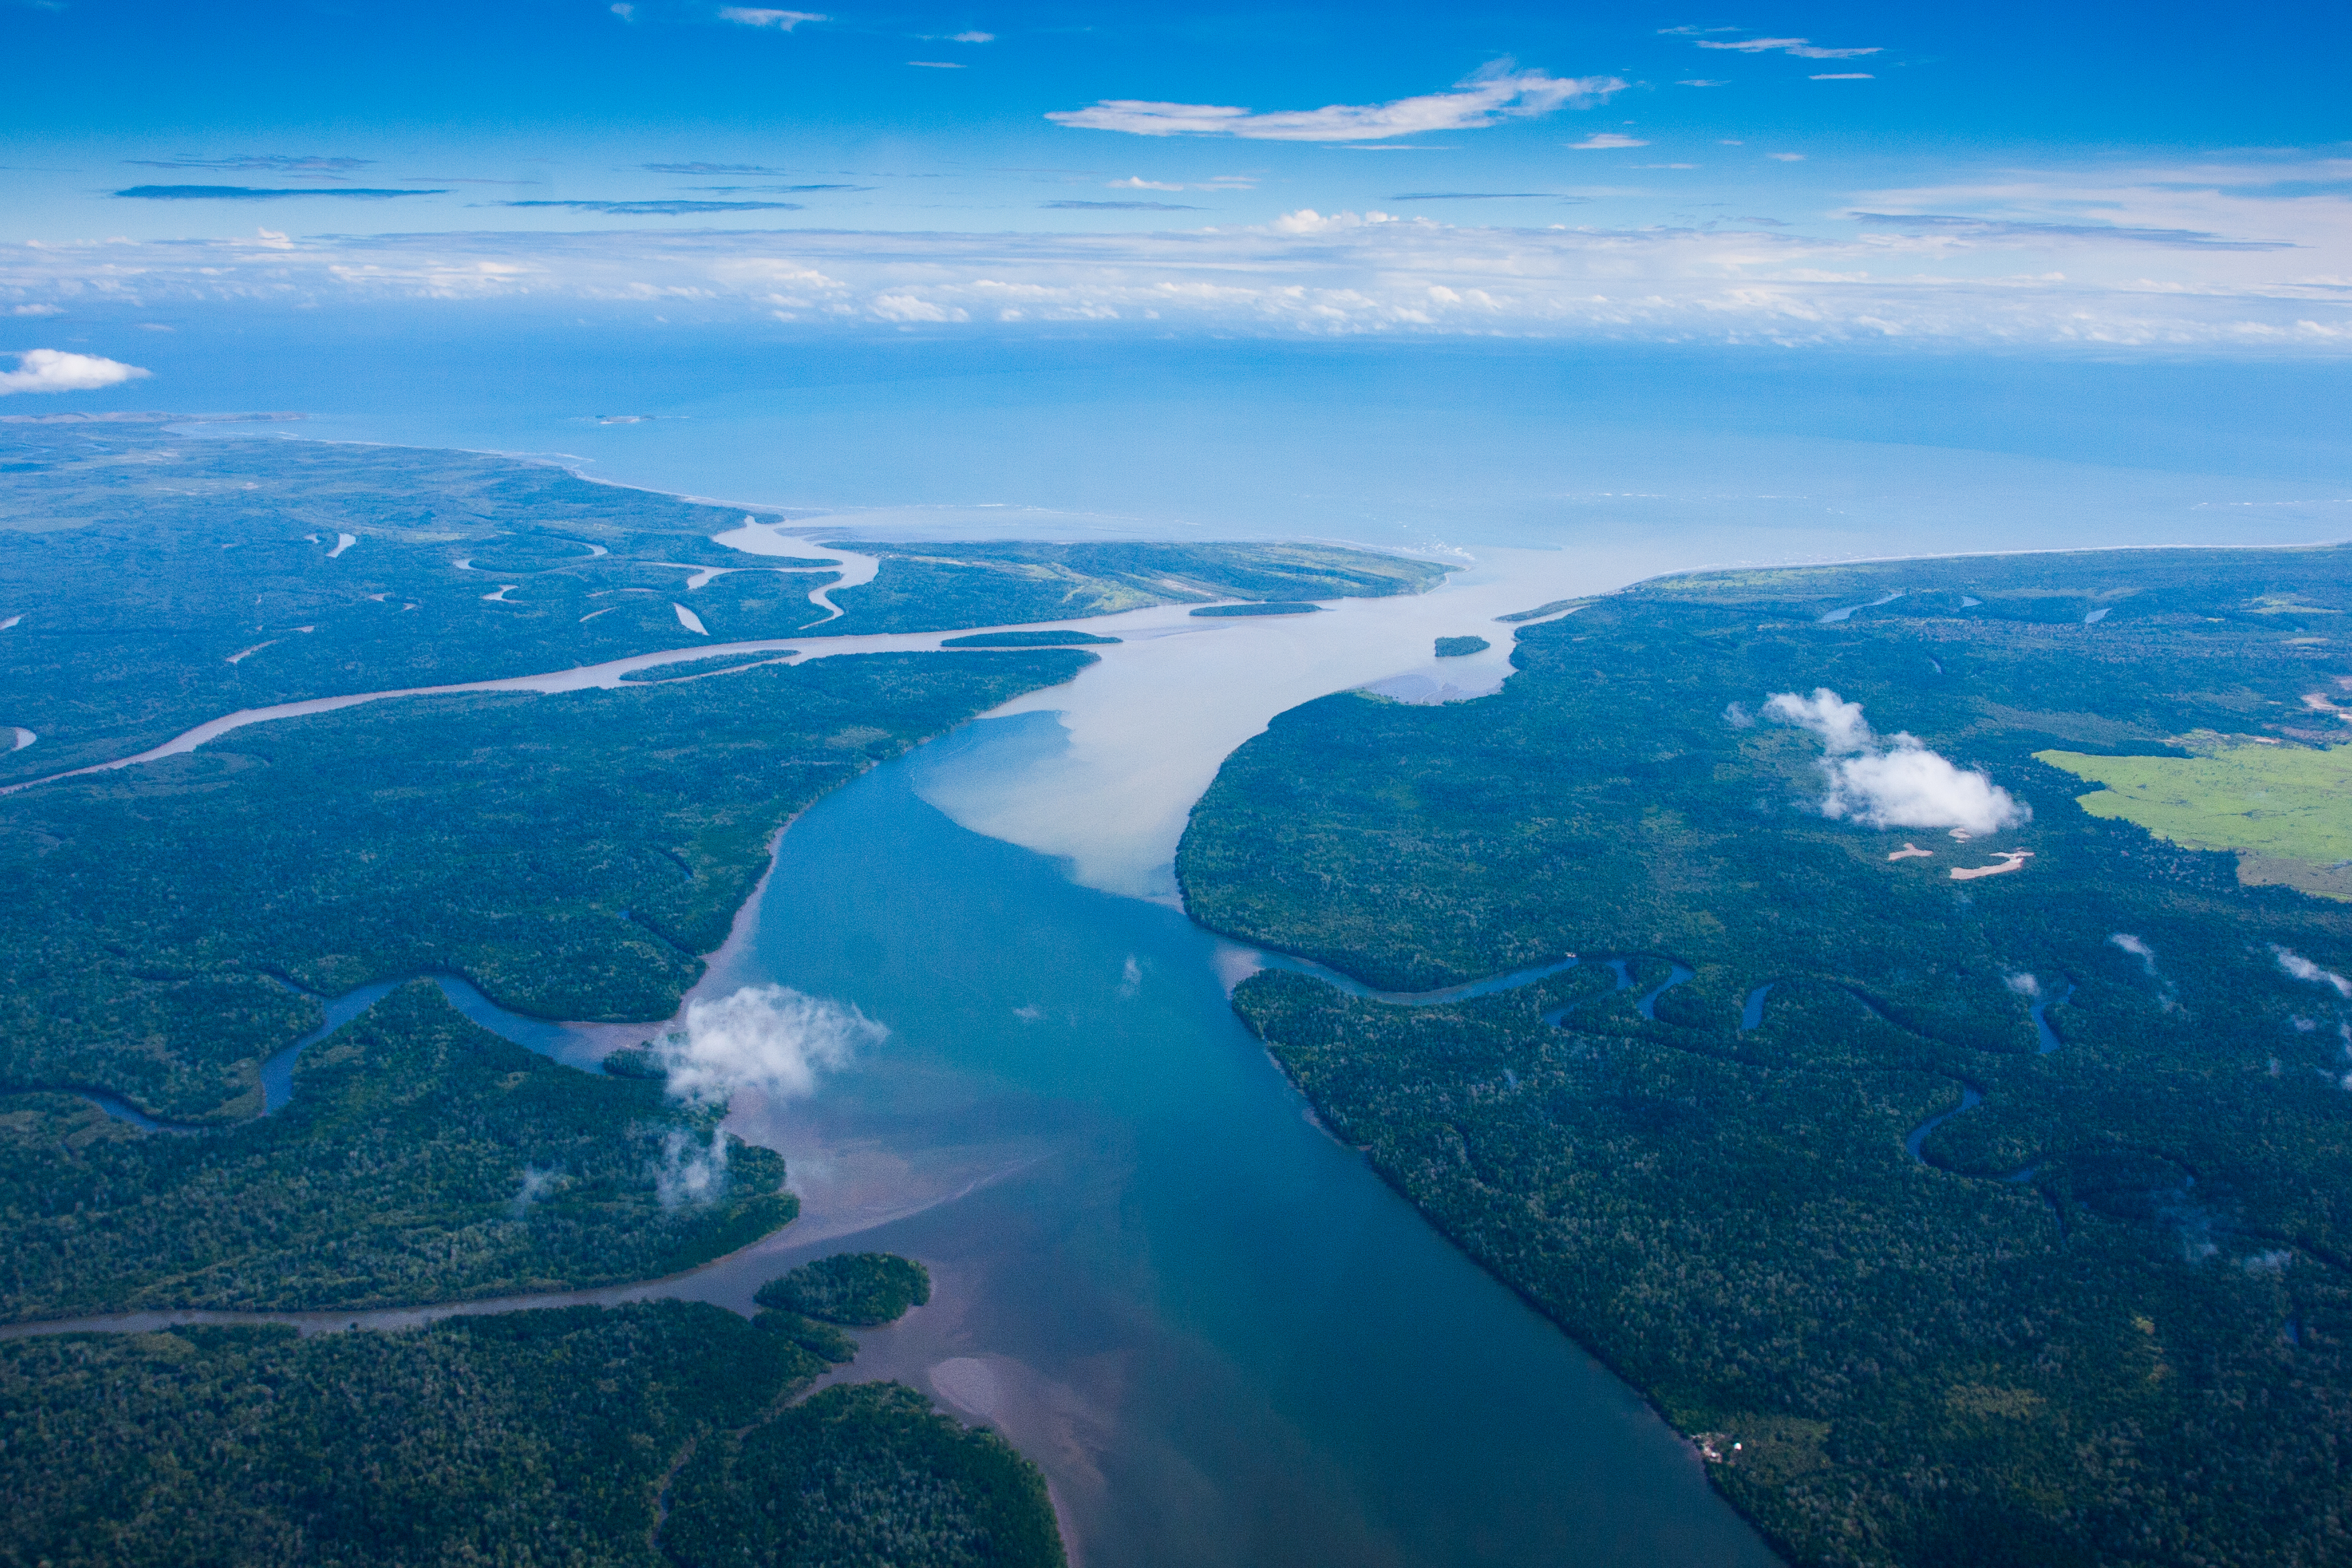 A view from above of a large river and smaller tributaries outside Port Moresby, Papua New Guinea